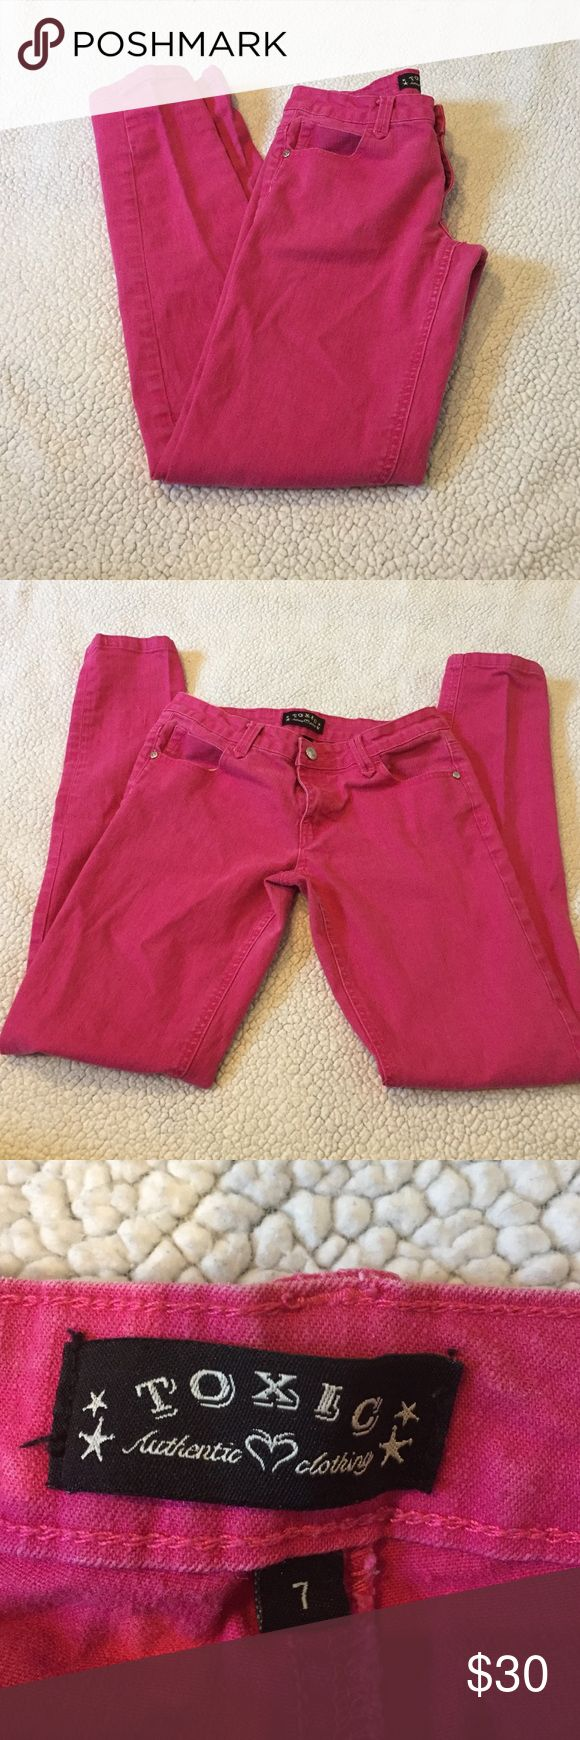 """Toxic hot pink skinny jeans Overall guc, they are somewhat faded and have minor pilling. Waist measures 13"""" and they do have a small amount of stretch. Inseam measures 30"""" Toxic Jeans Skinny"""